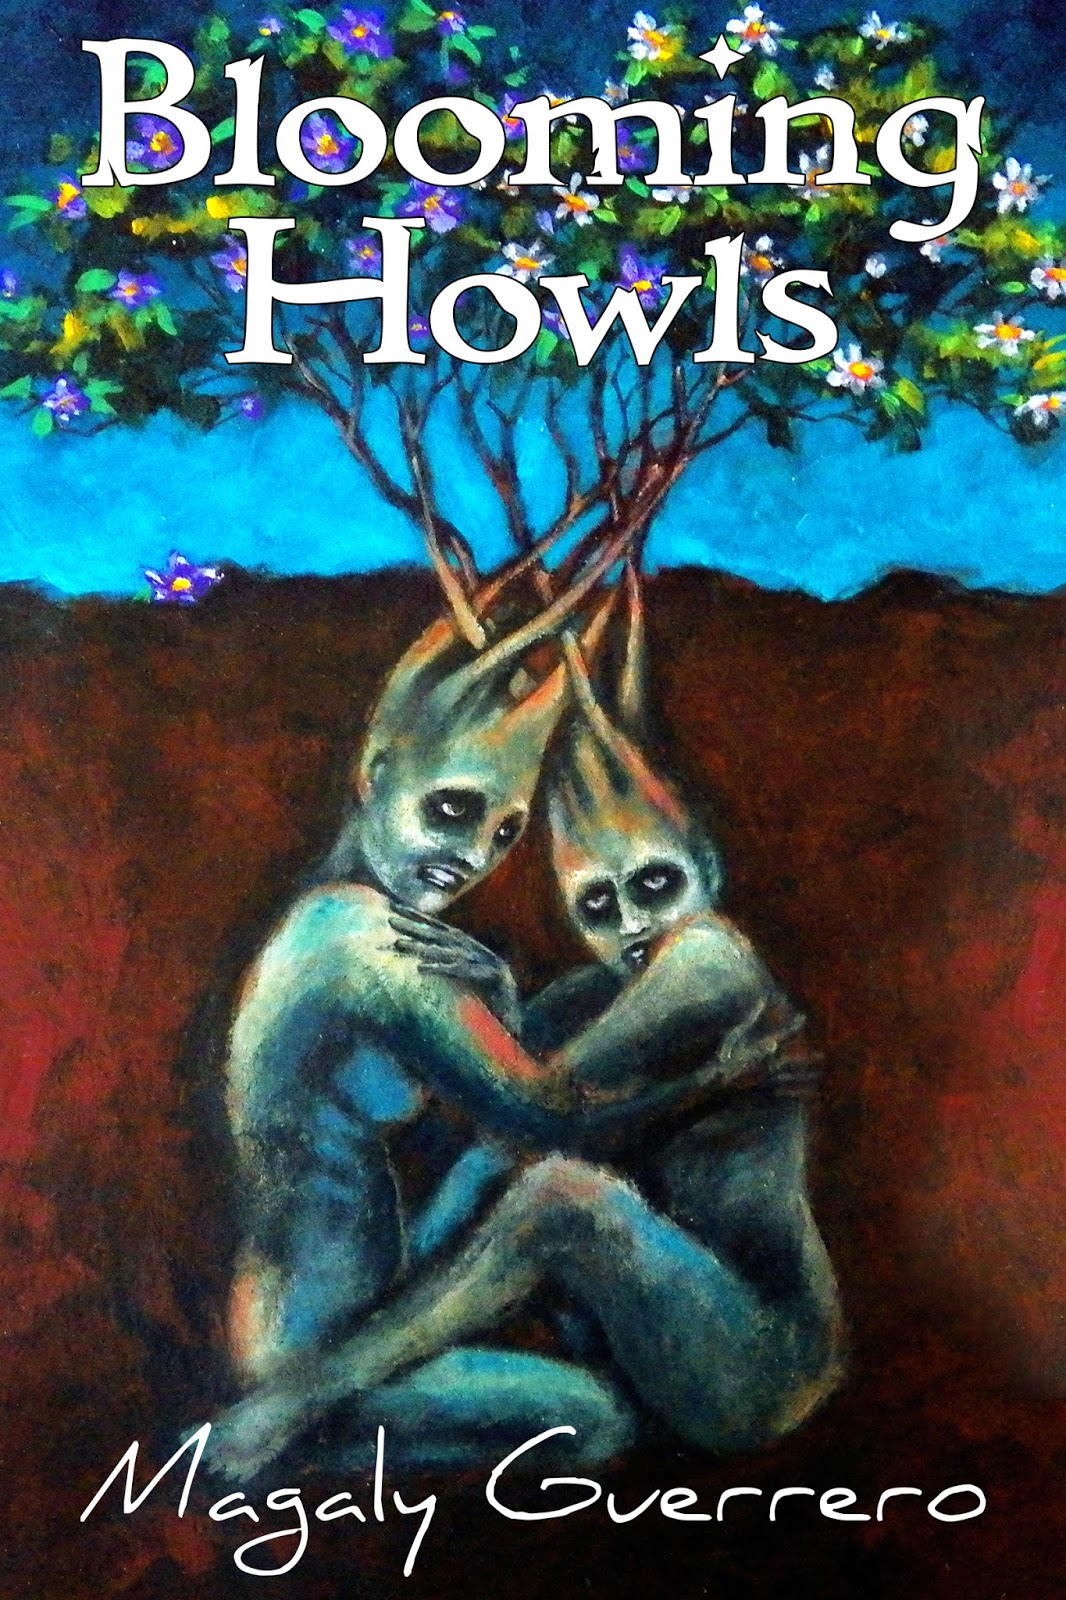 http://pagan-culture.blogspot.com/p/blooming-howls.html